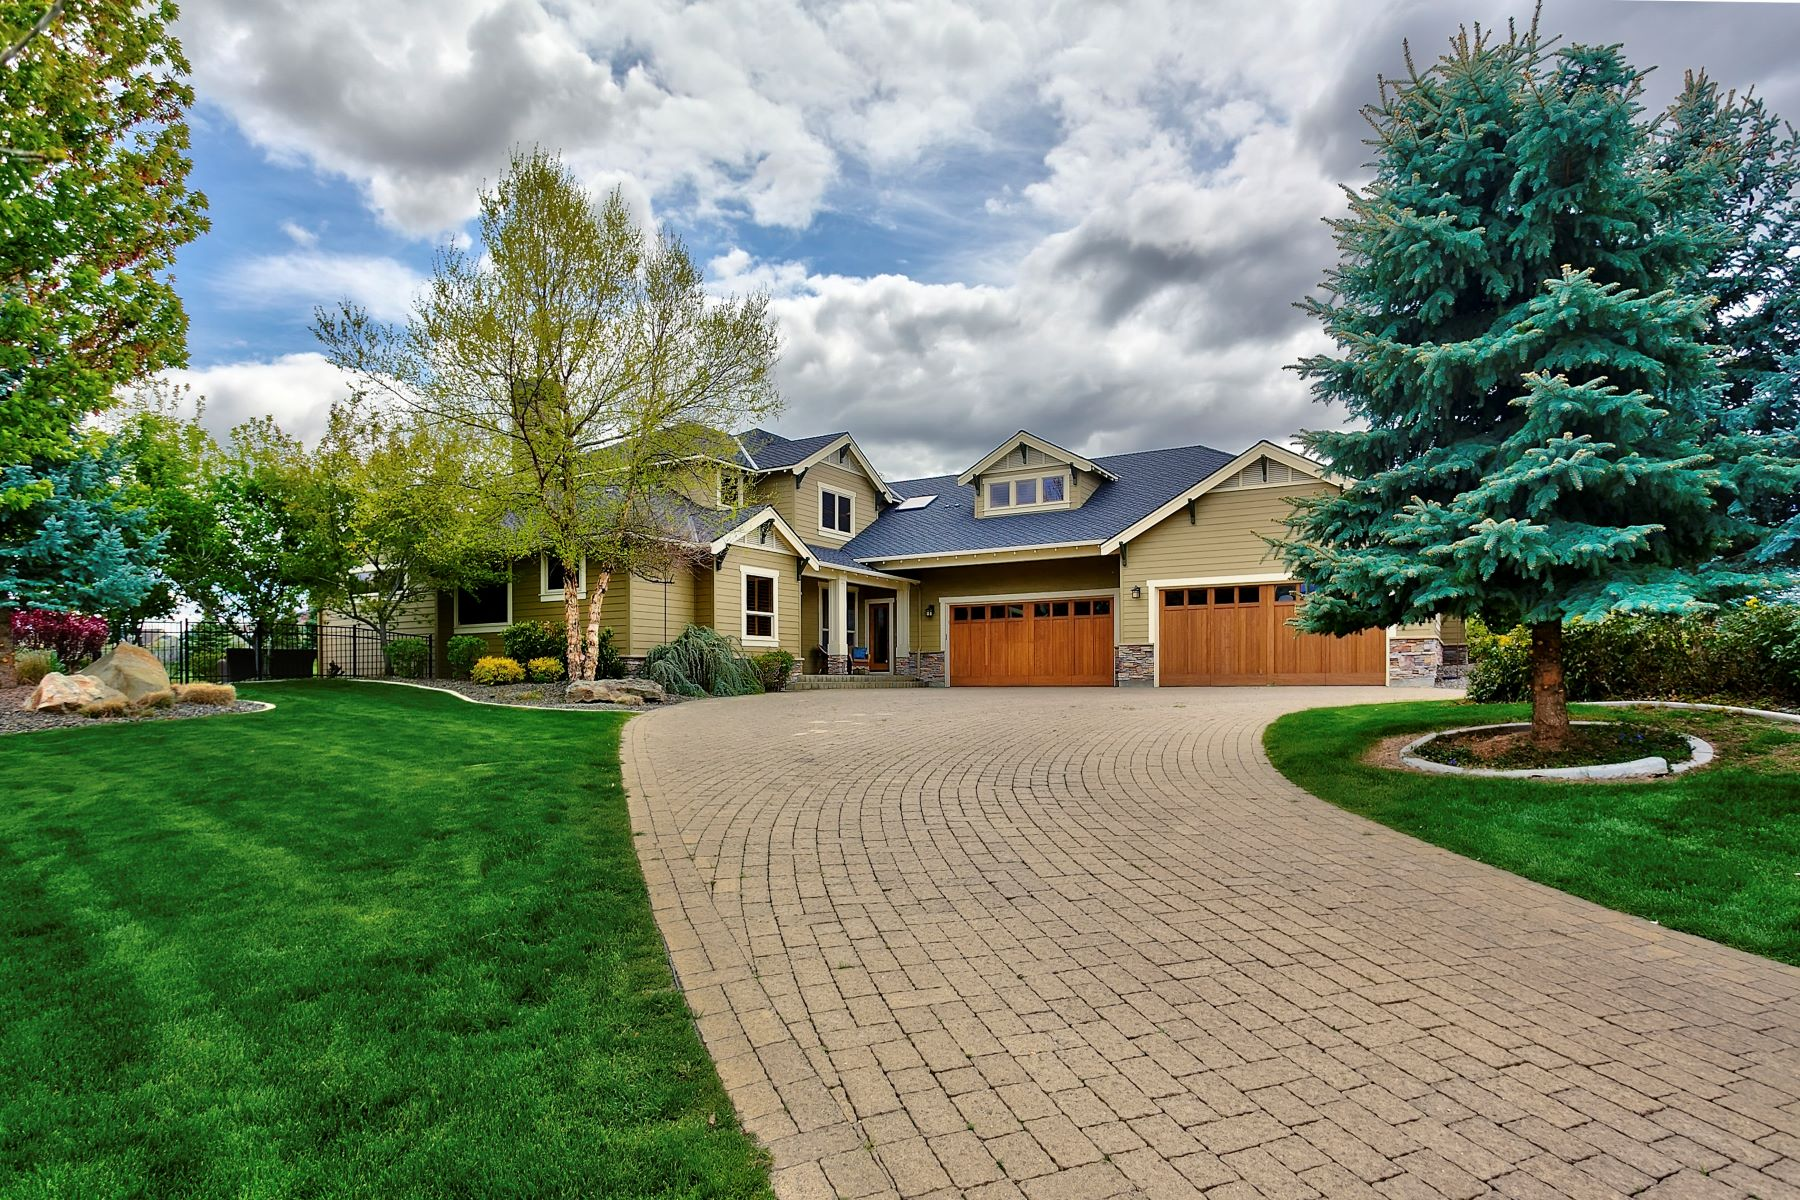 Single Family Homes for Sale at 12914 Town Ridge Road, Boise 12914 N Town Ridge Rd Boise, Idaho 83714 United States